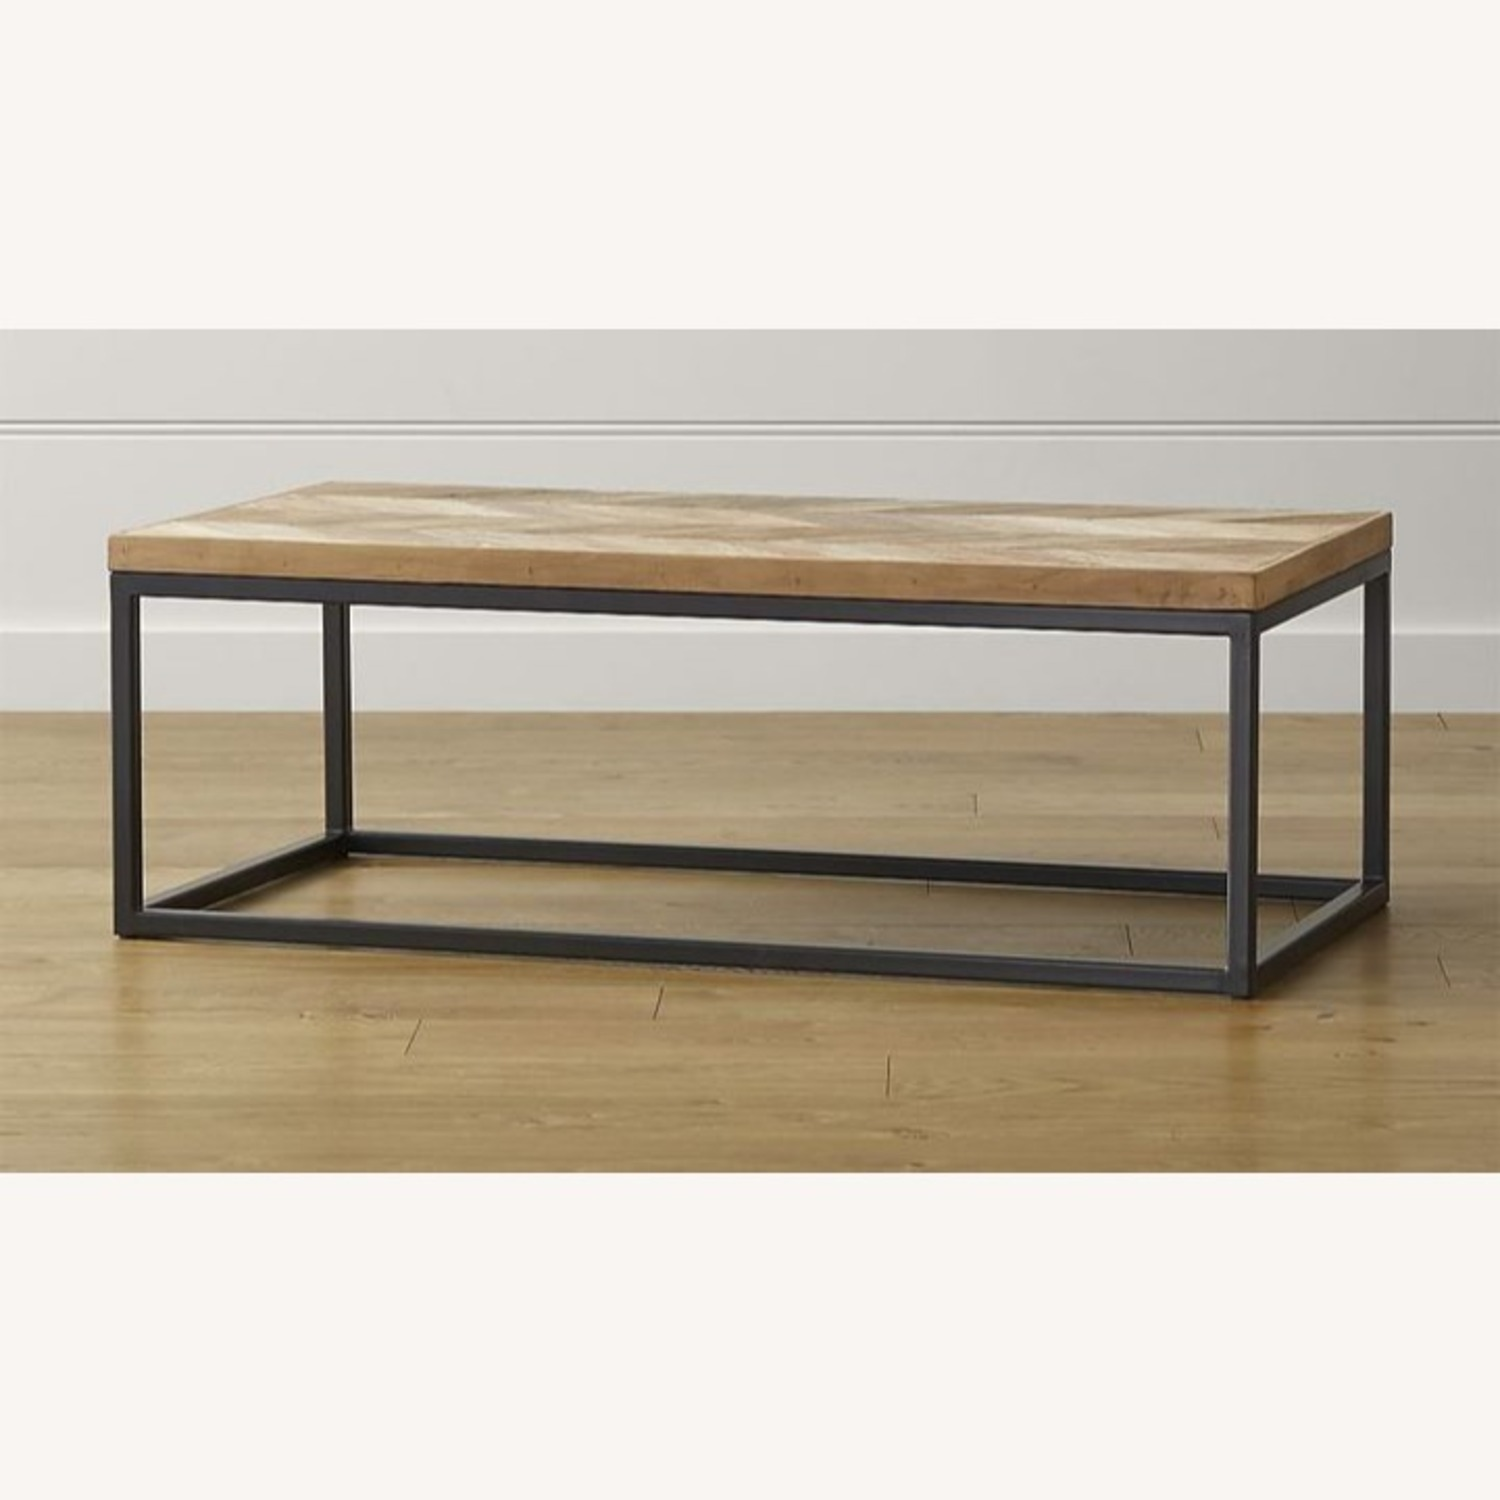 Crate & Barrel Mid Century Modern Coffee Table - image-2